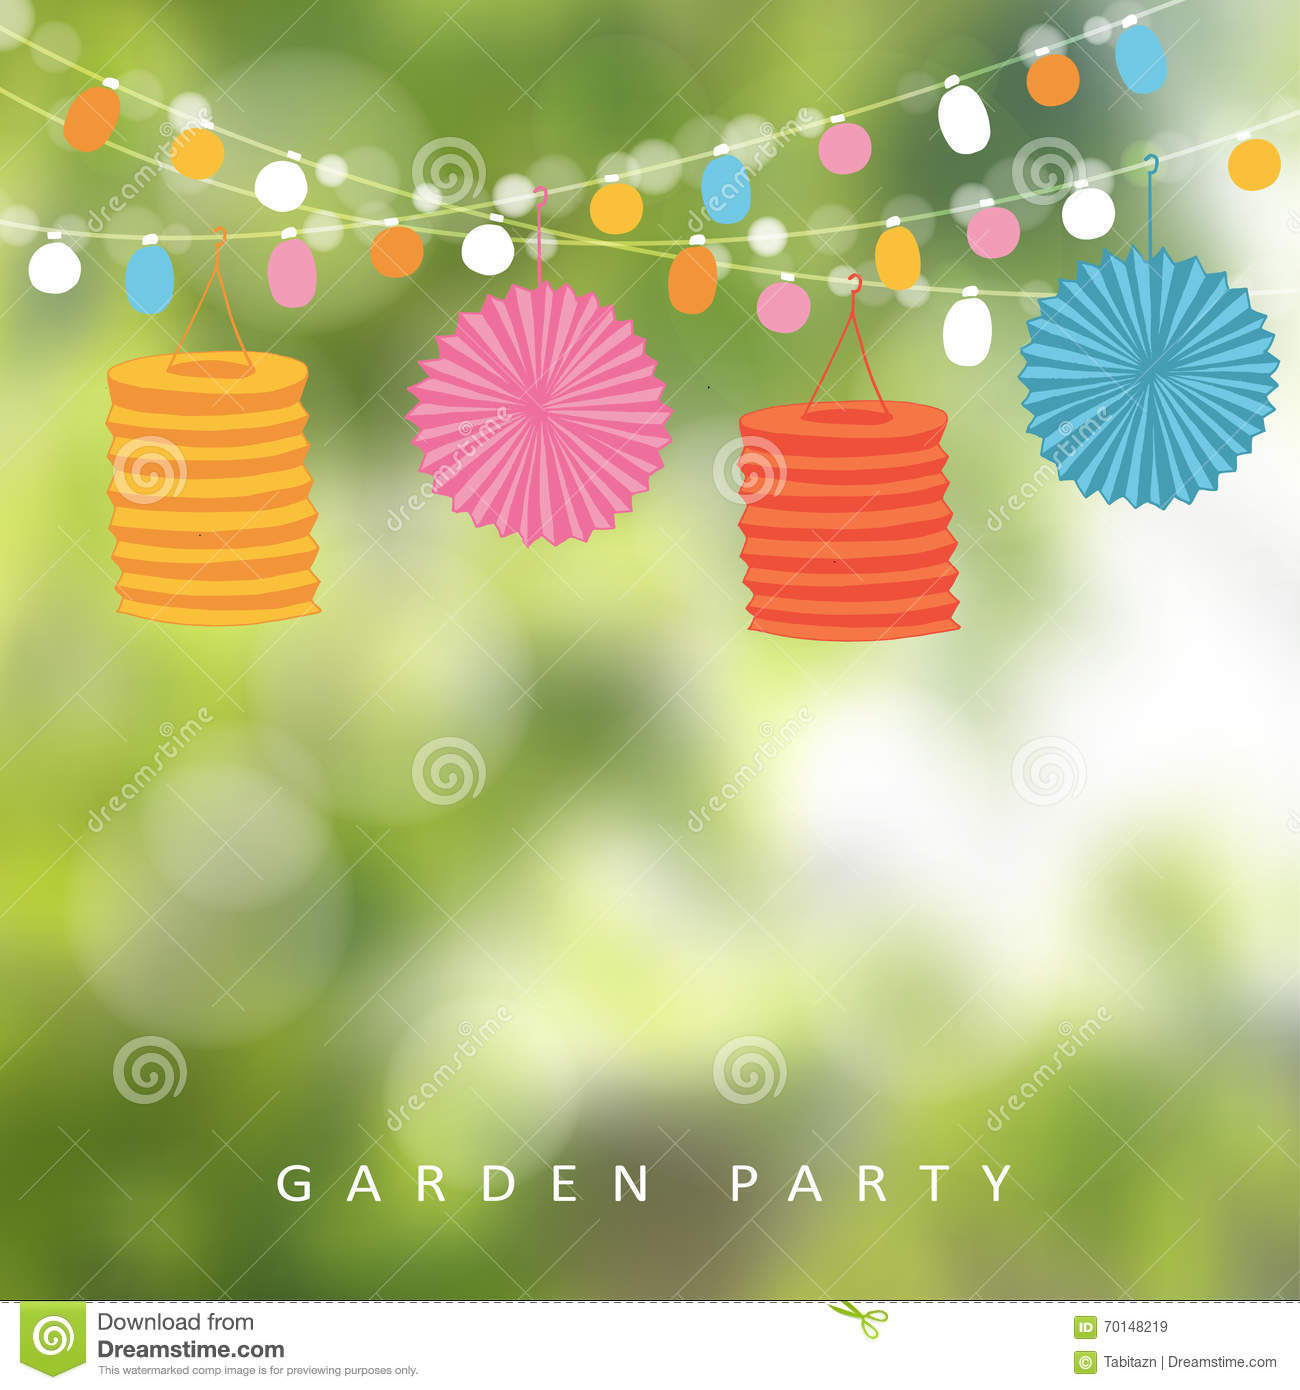 Outdoor Party Lights Clipart: Birthday Garden Party Or Brazilian June Party